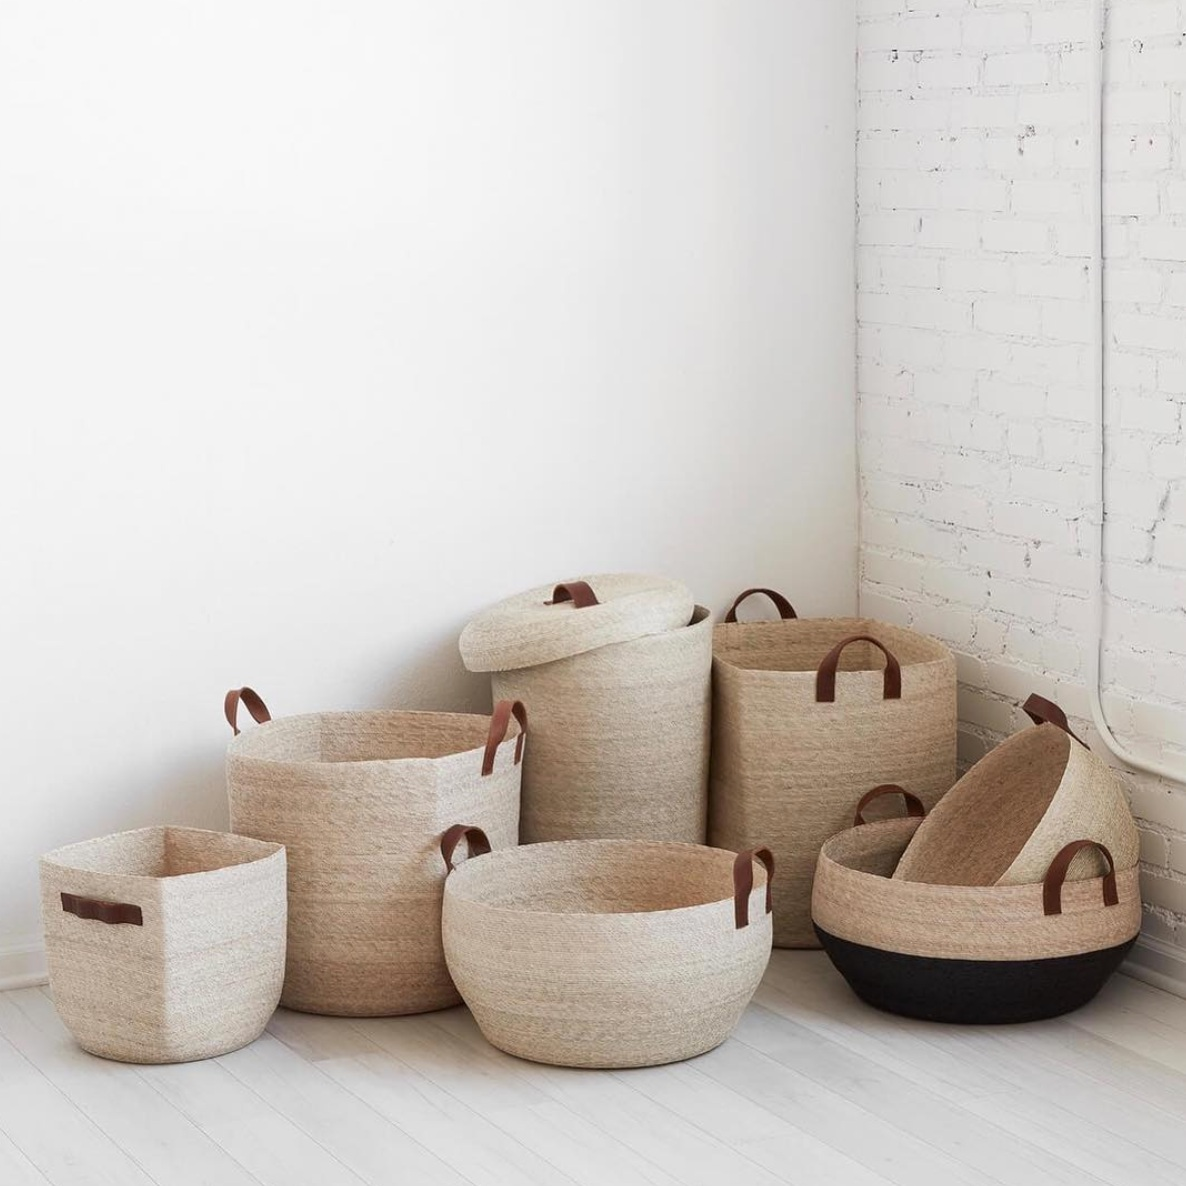 Citizenry_Handwoven_Baskets.jpg